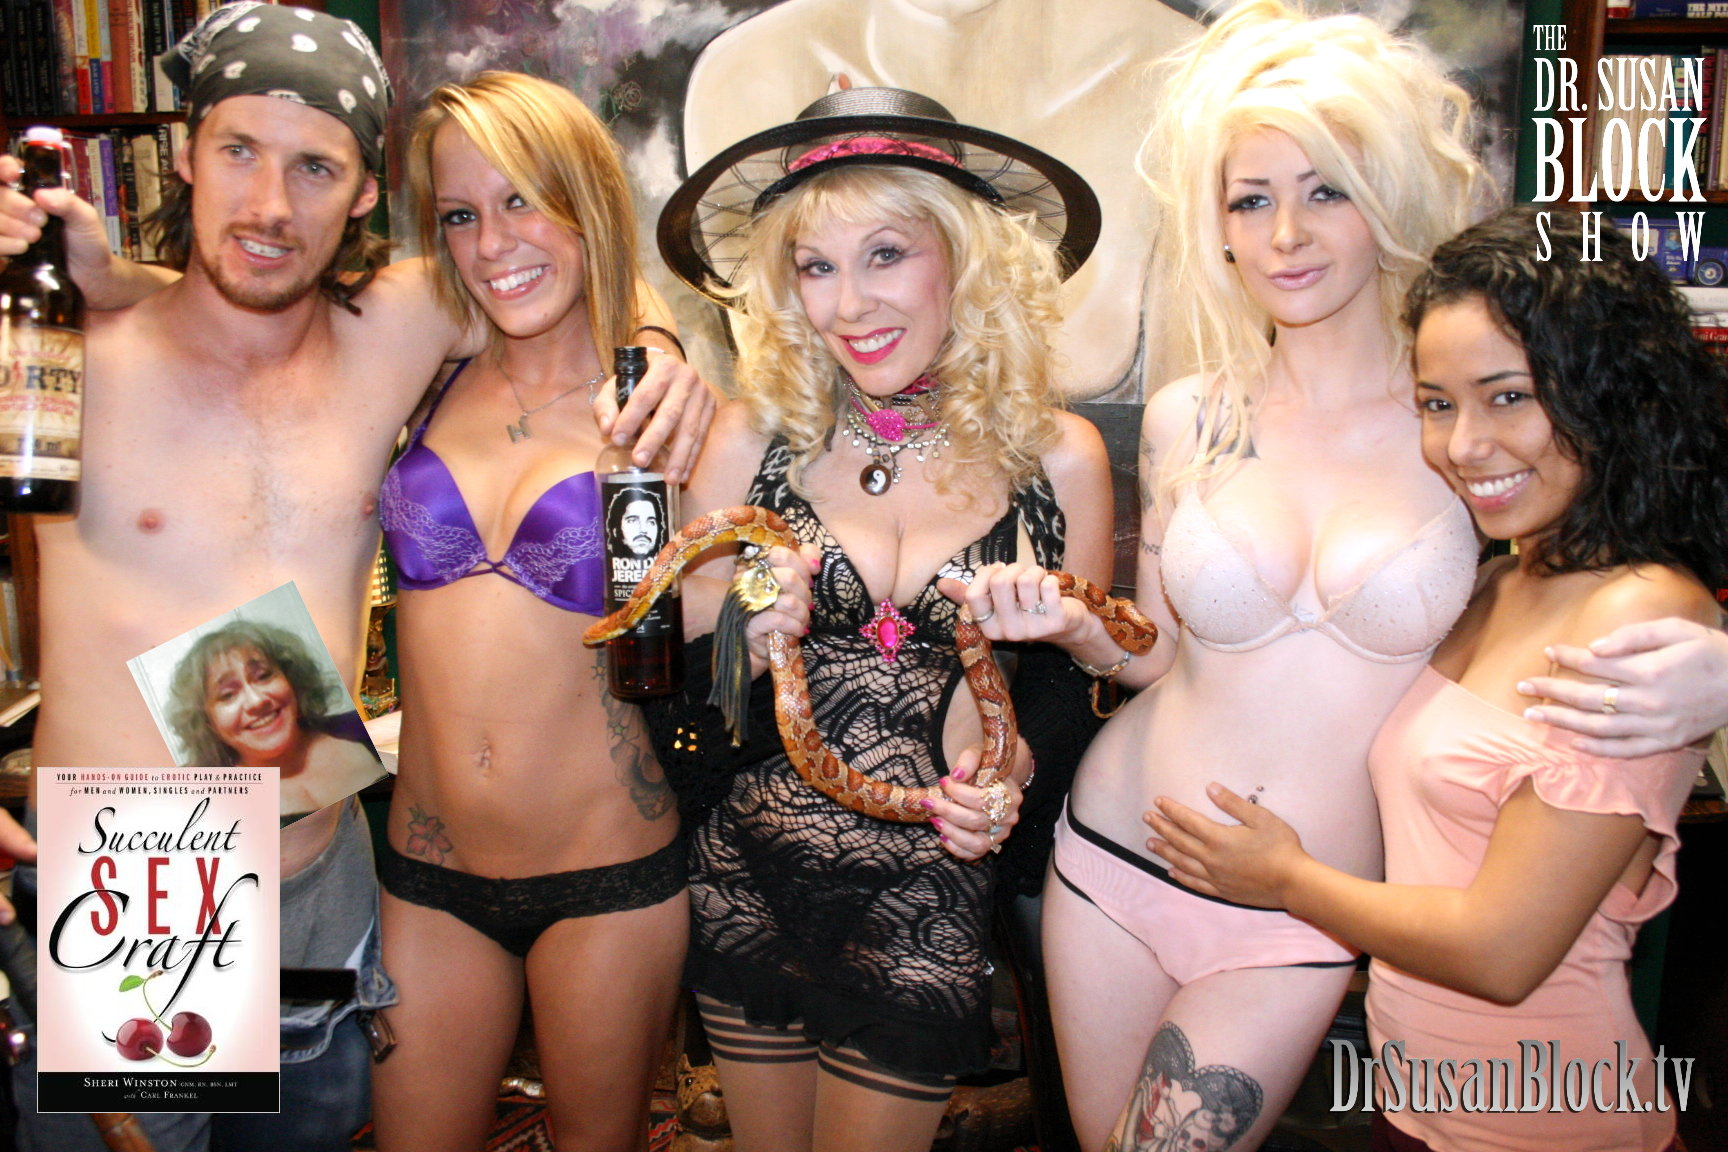 """""""Succulent Sex Craft,"""" Amor and More on DrSuzy.Tv"""